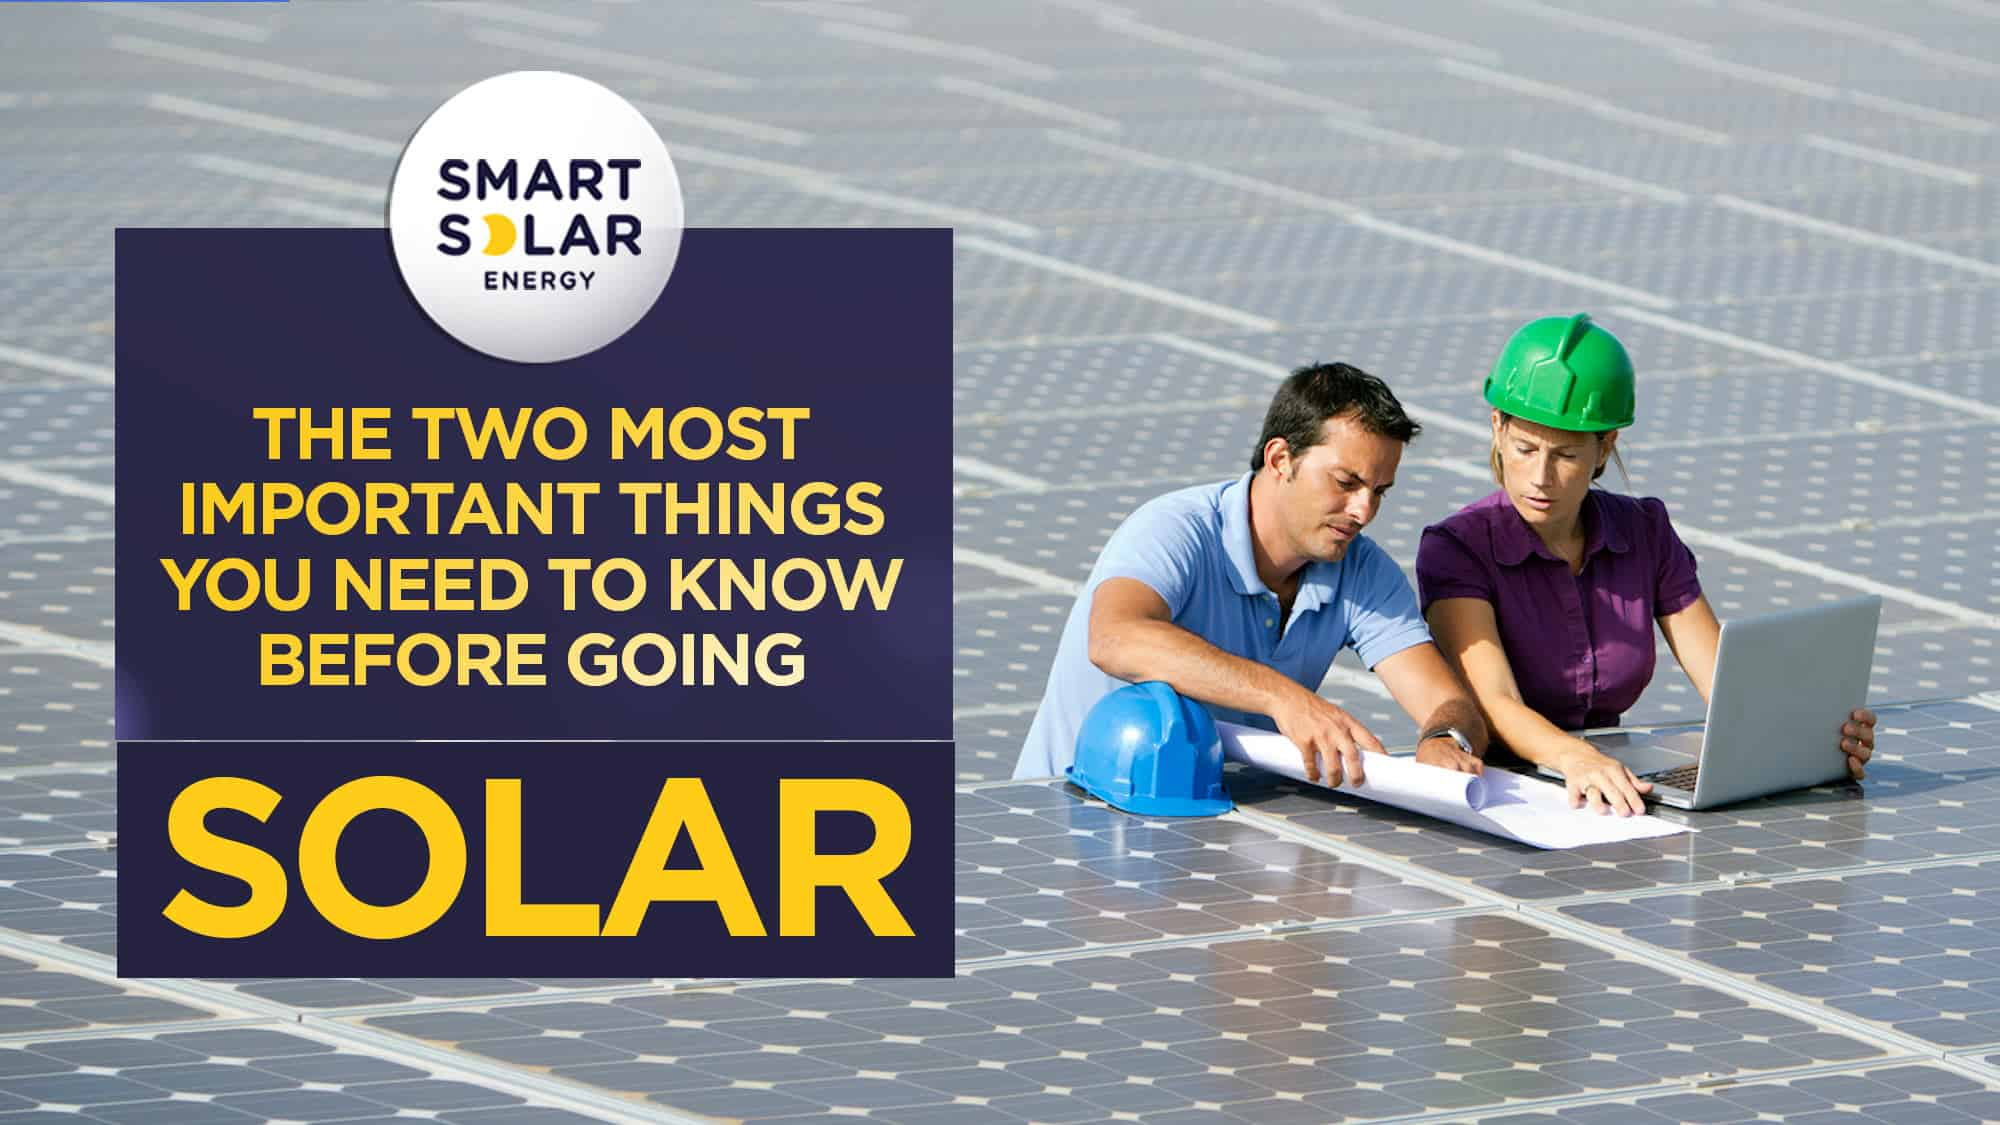 The Two Most Important Things You Need To Know Before Going Solar